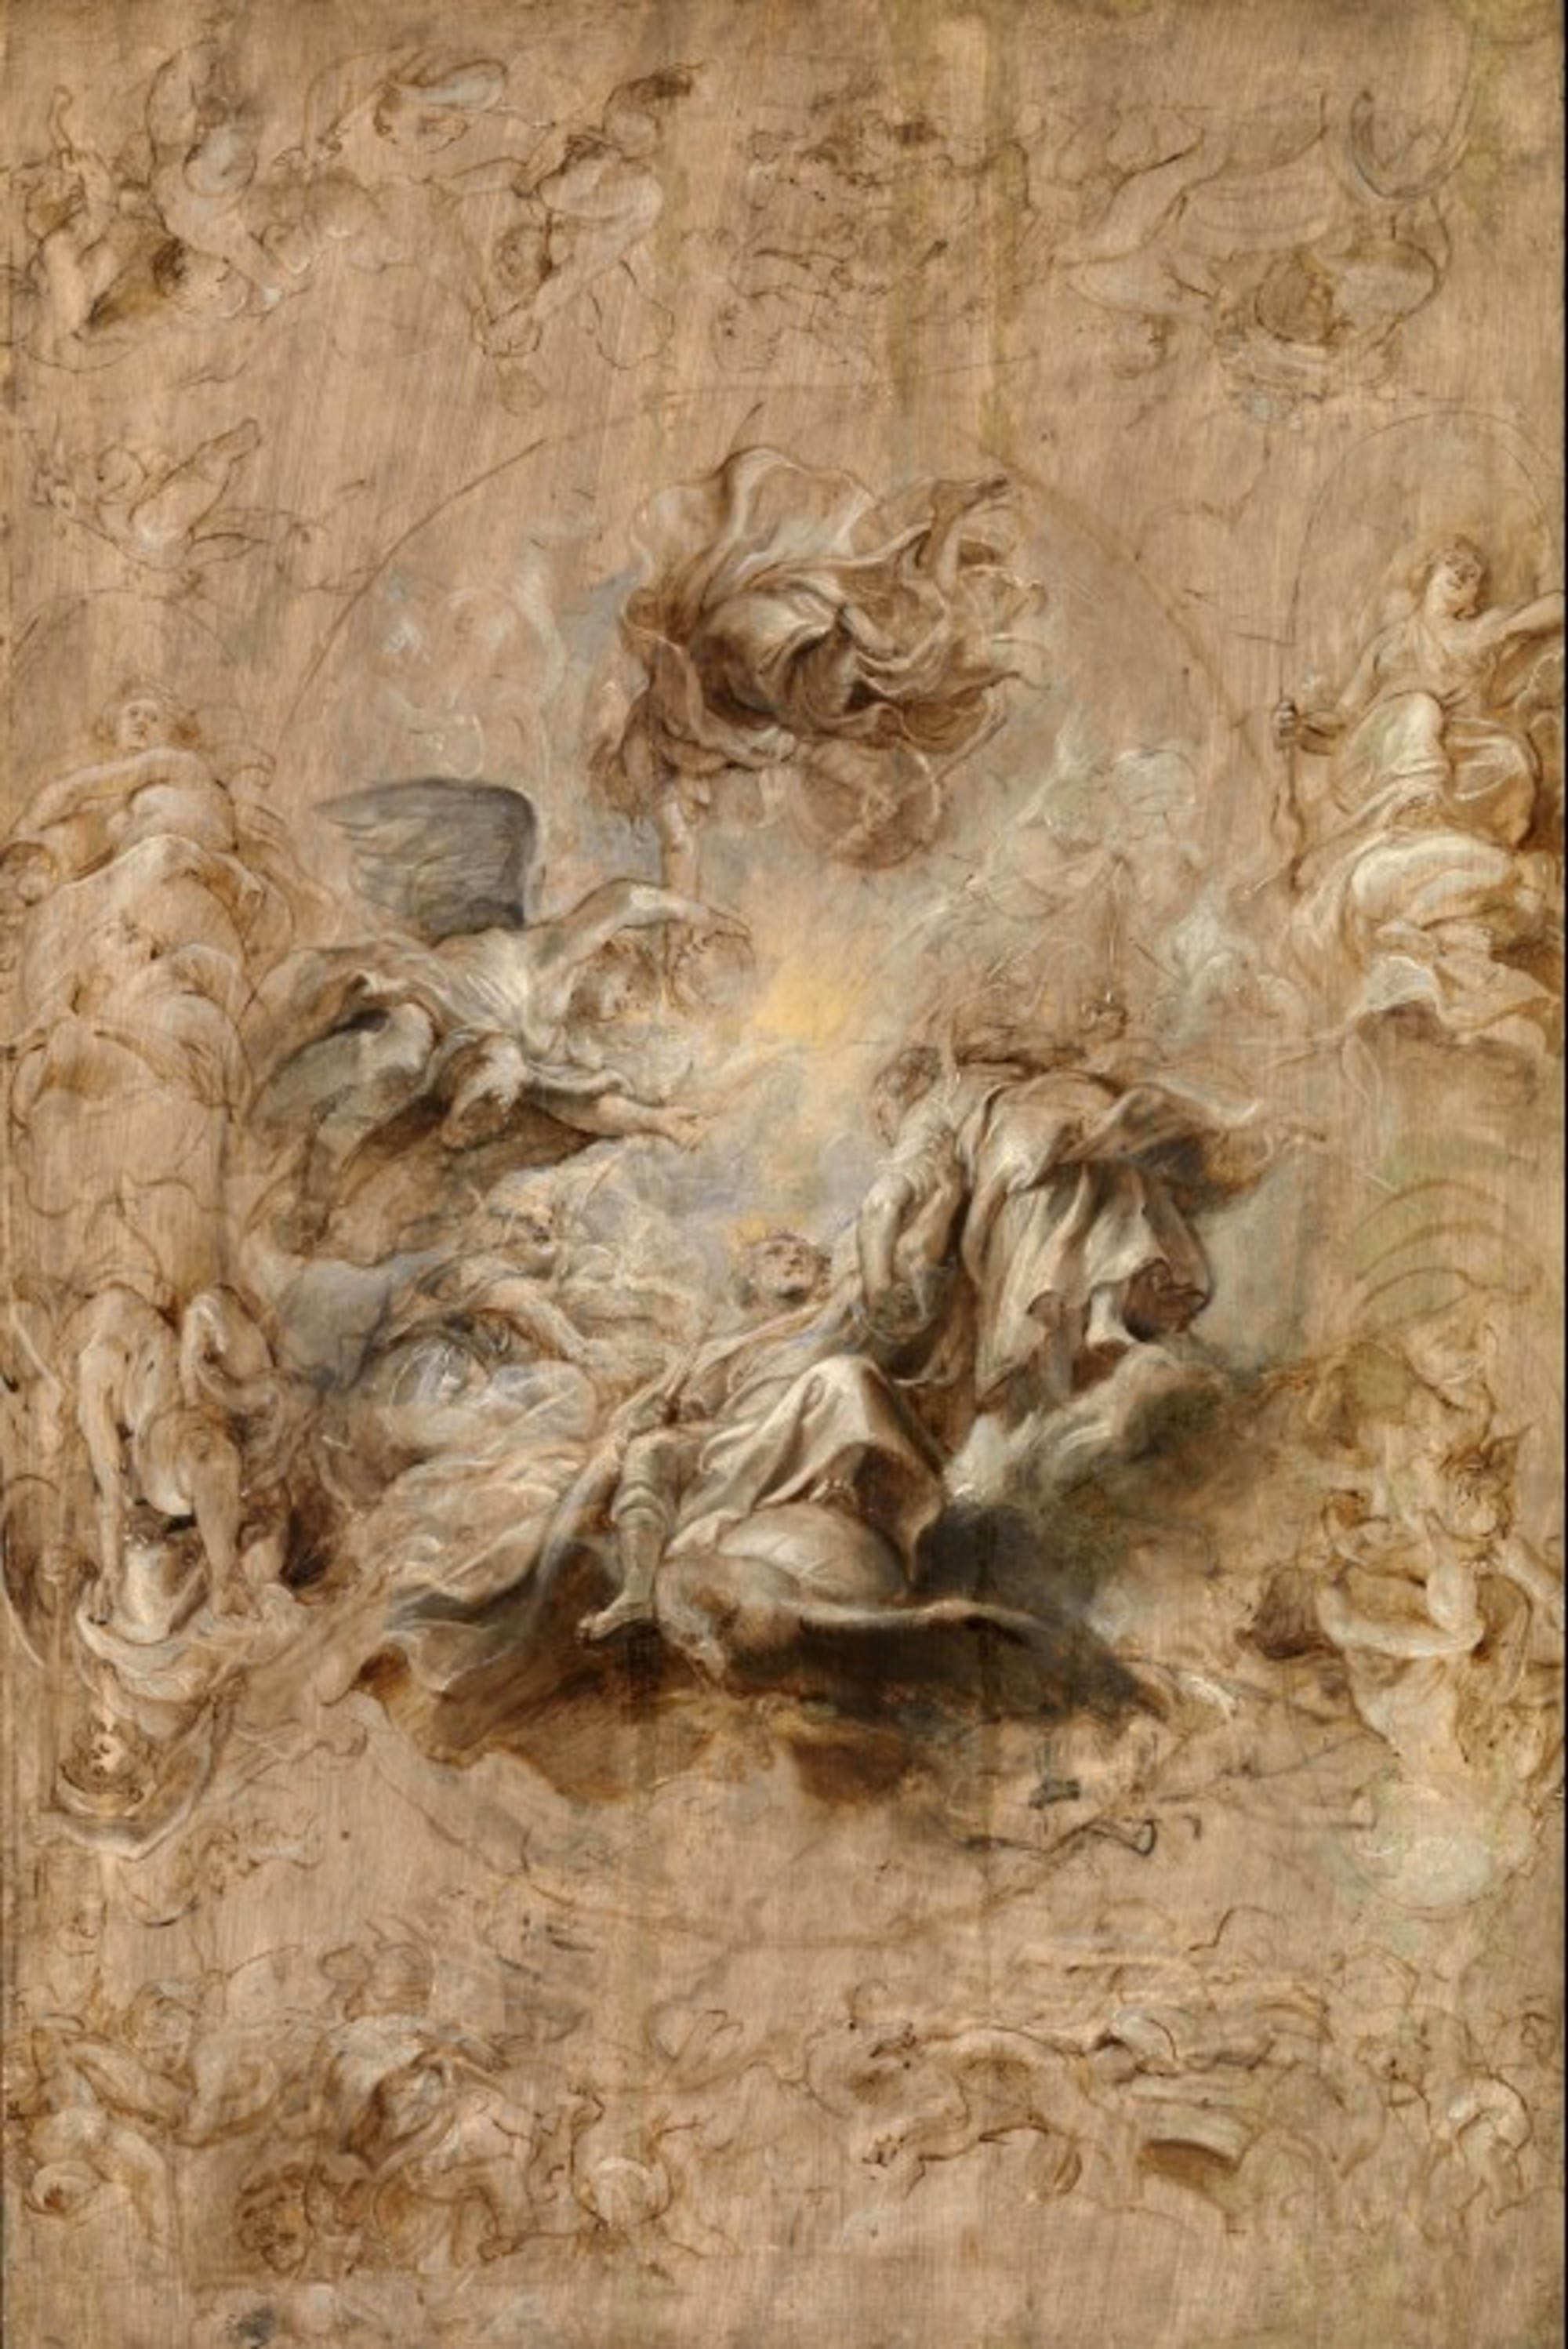 Sir-Peter-Paul-Rubens---Multiple-Sketch-for-the-Banqueting-House-Ceiling-Tate-Britain.jpg